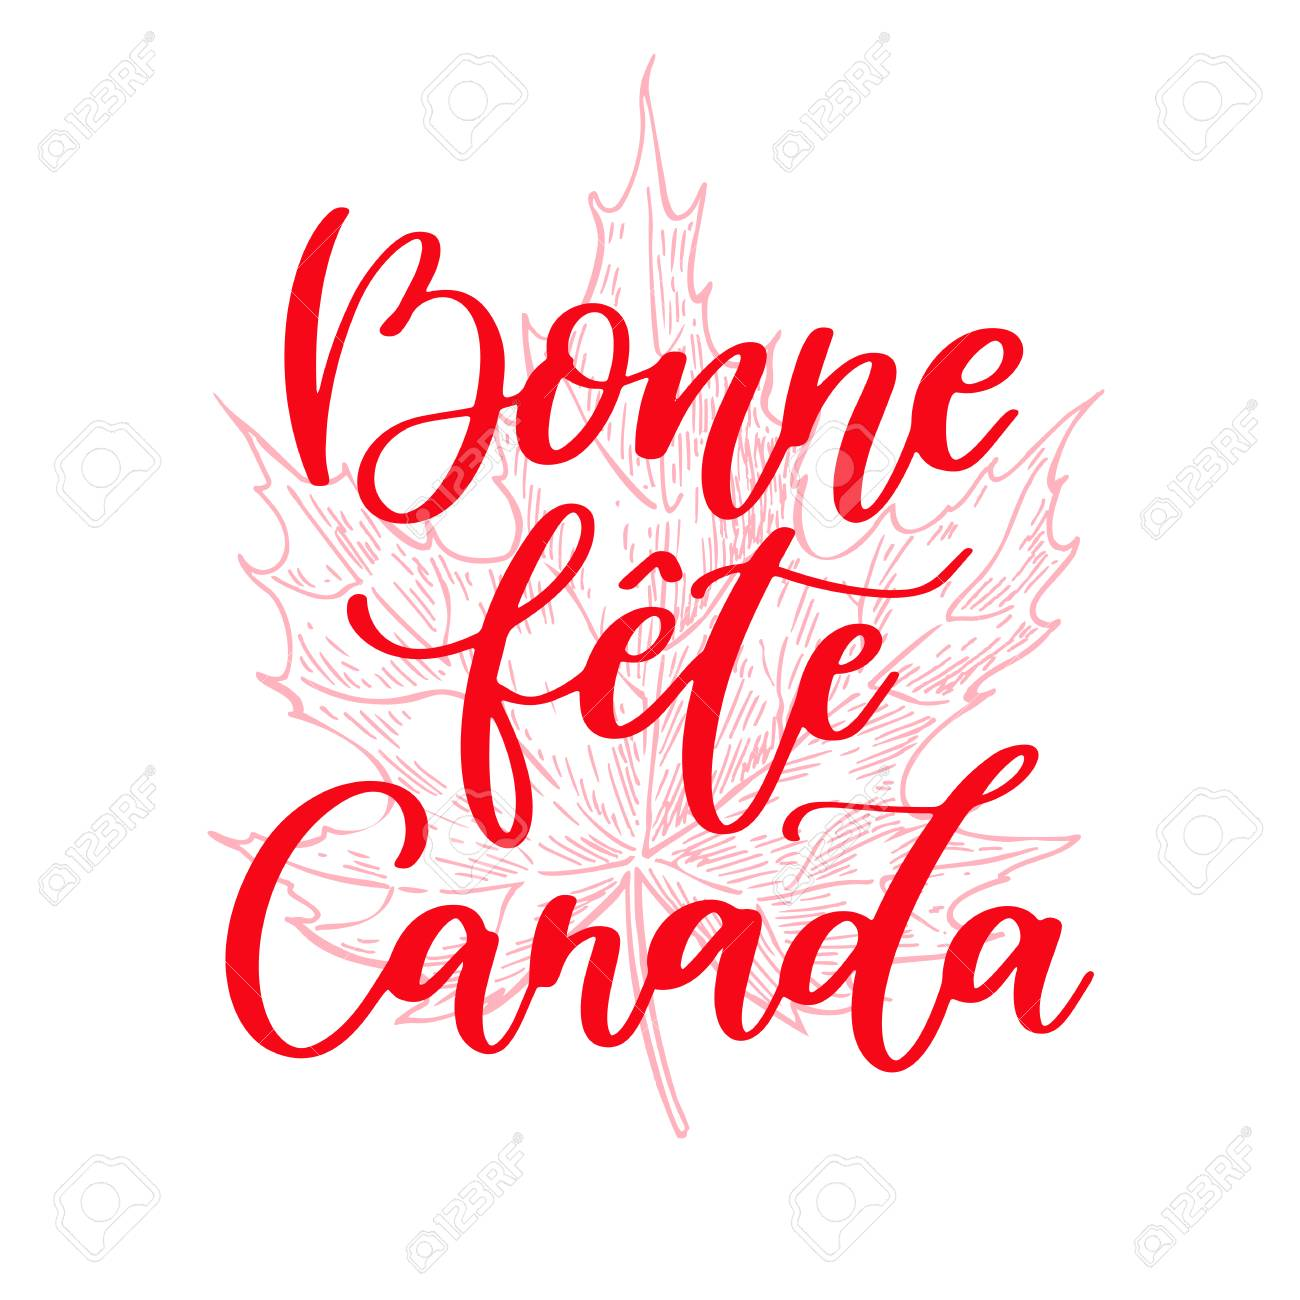 Happy Canada day vector card in french. Bonne fete Canada. Handwritten lettering with maple. Calligraphy sticker. Great for banner, poster, sale, card - 79083009